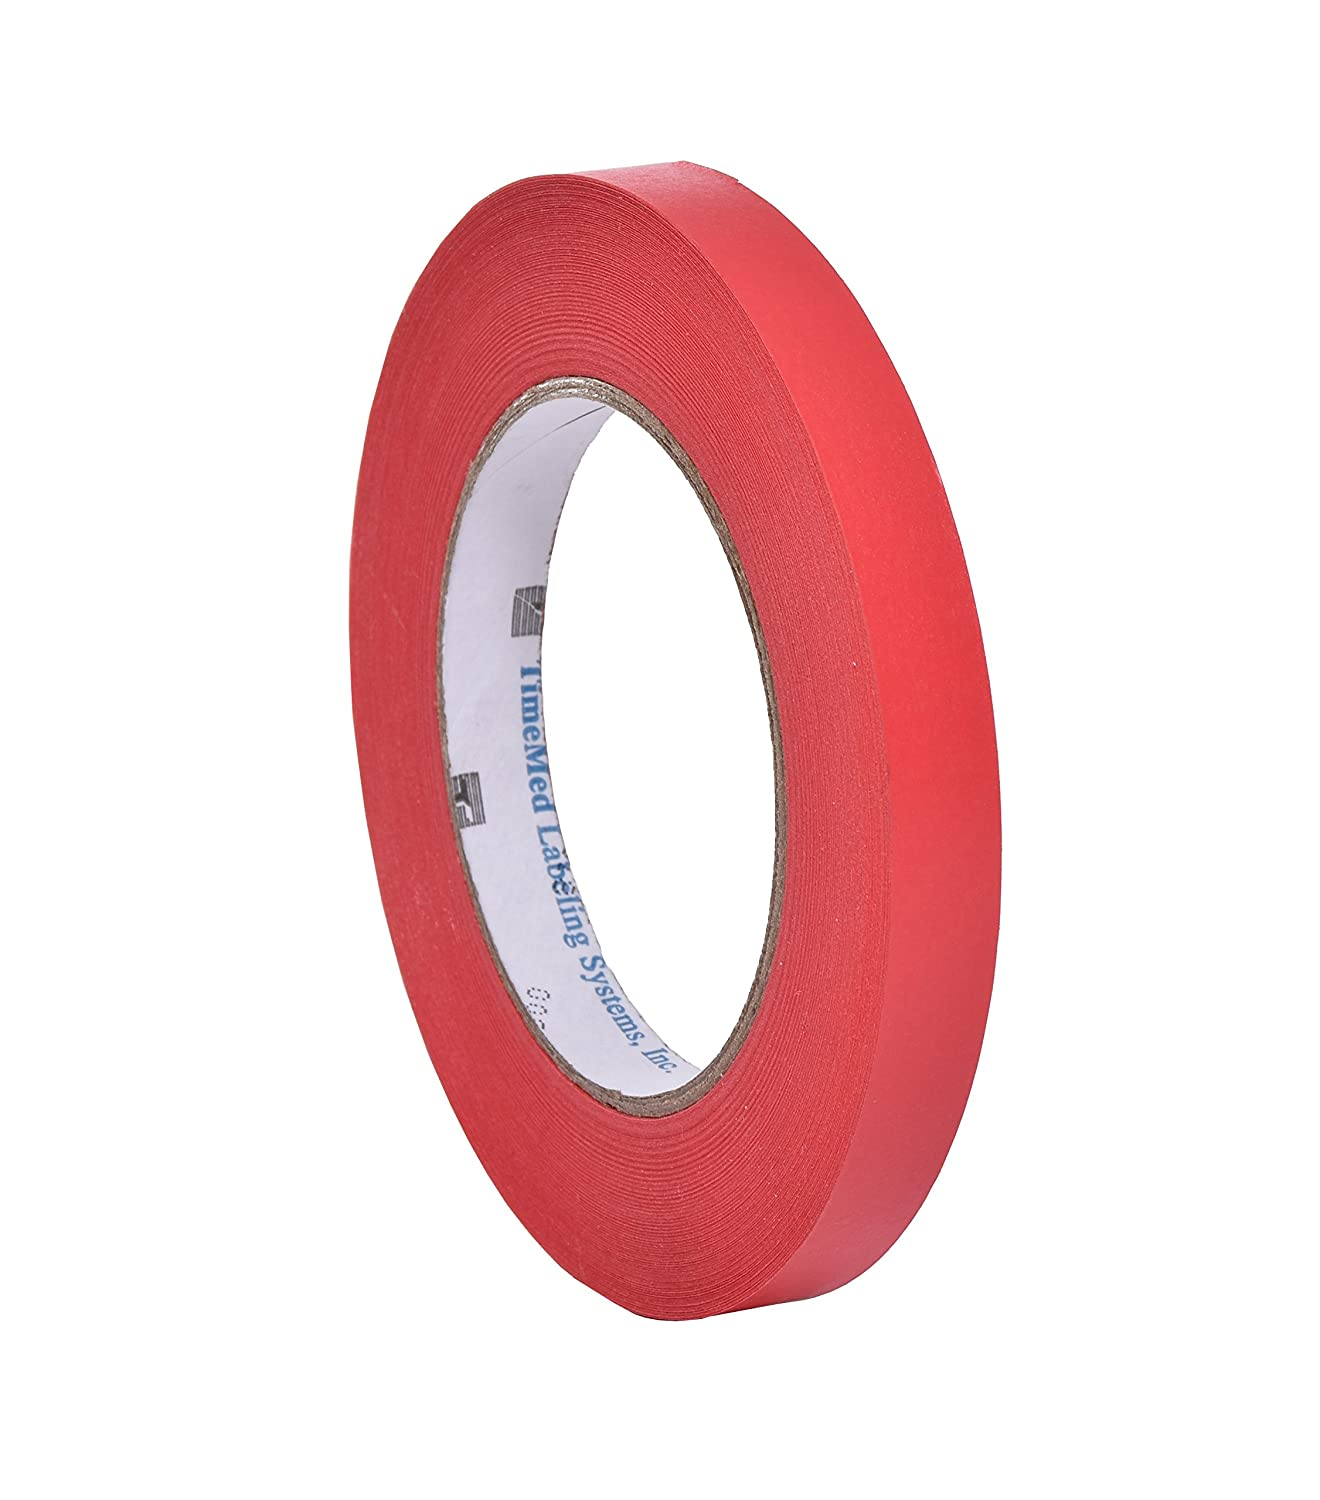 Camlab 1151363 Labelling Tape, 1/2' Wide, 2160'(55 m) Long, Blue 1/2 Wide 2160(55 m) Long